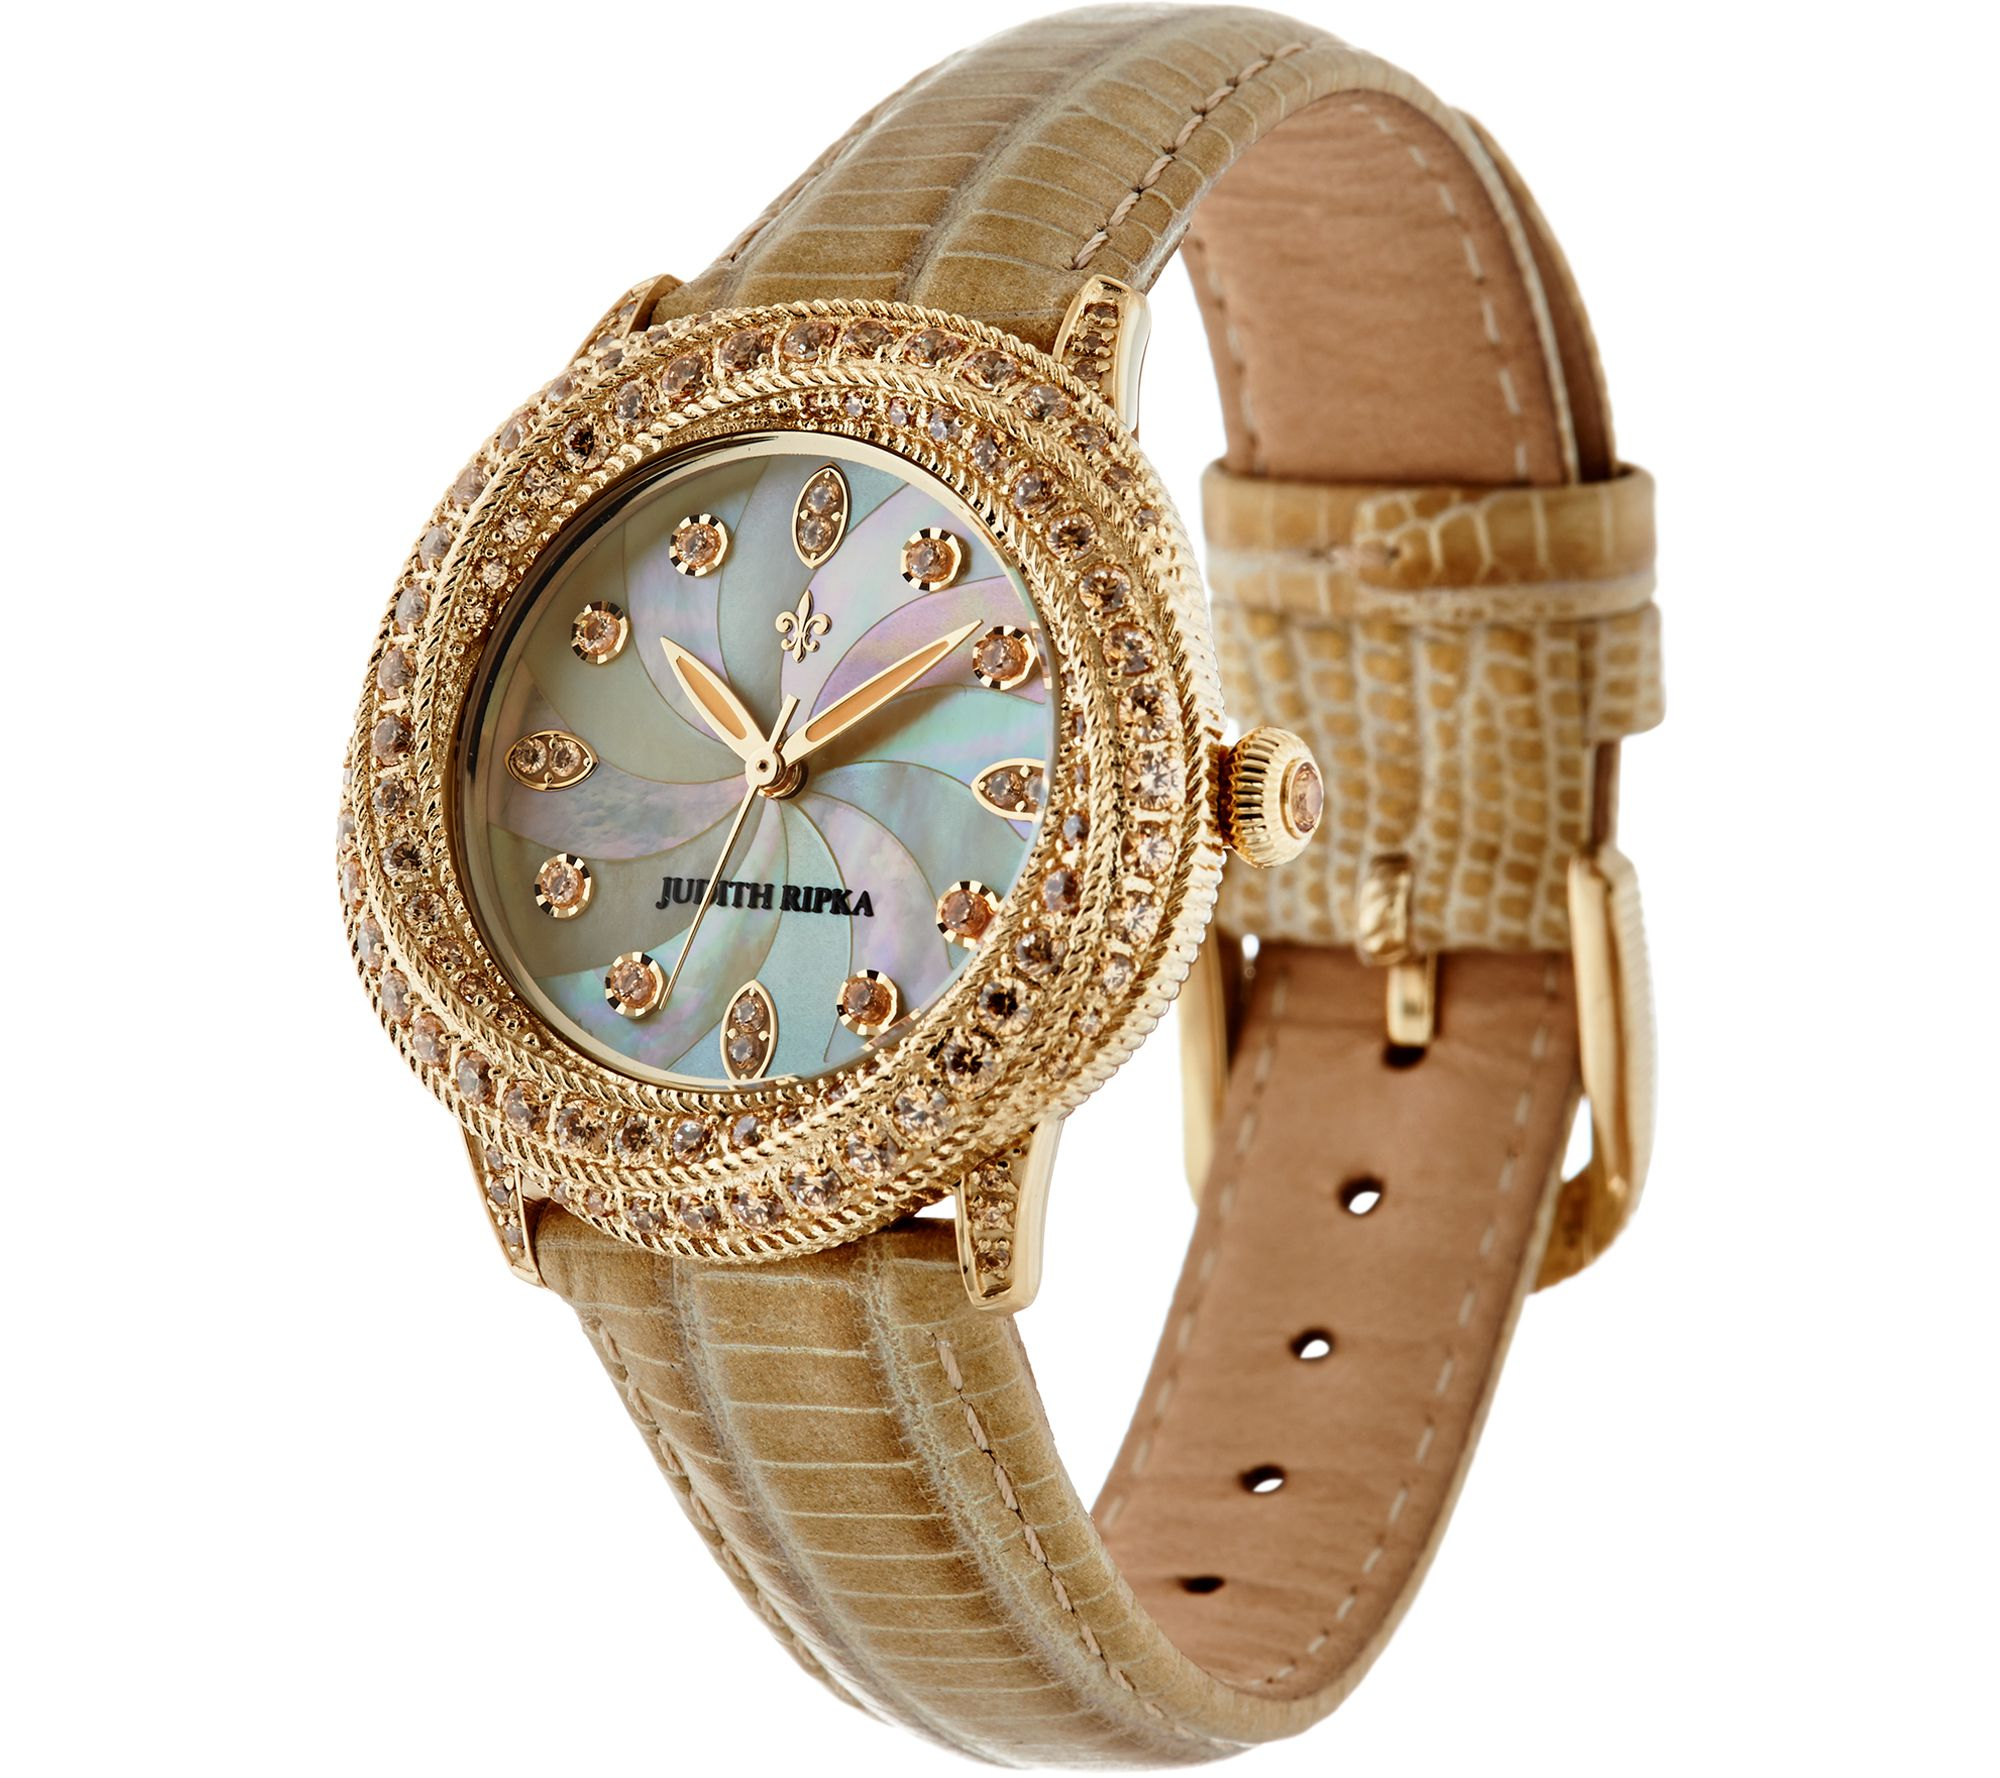 1541c77ec64 http   www.qvc.com Judith-Ripka-Stainless-Steel-Diamonique-Tempest-Leather- Watch.product.J348184.html